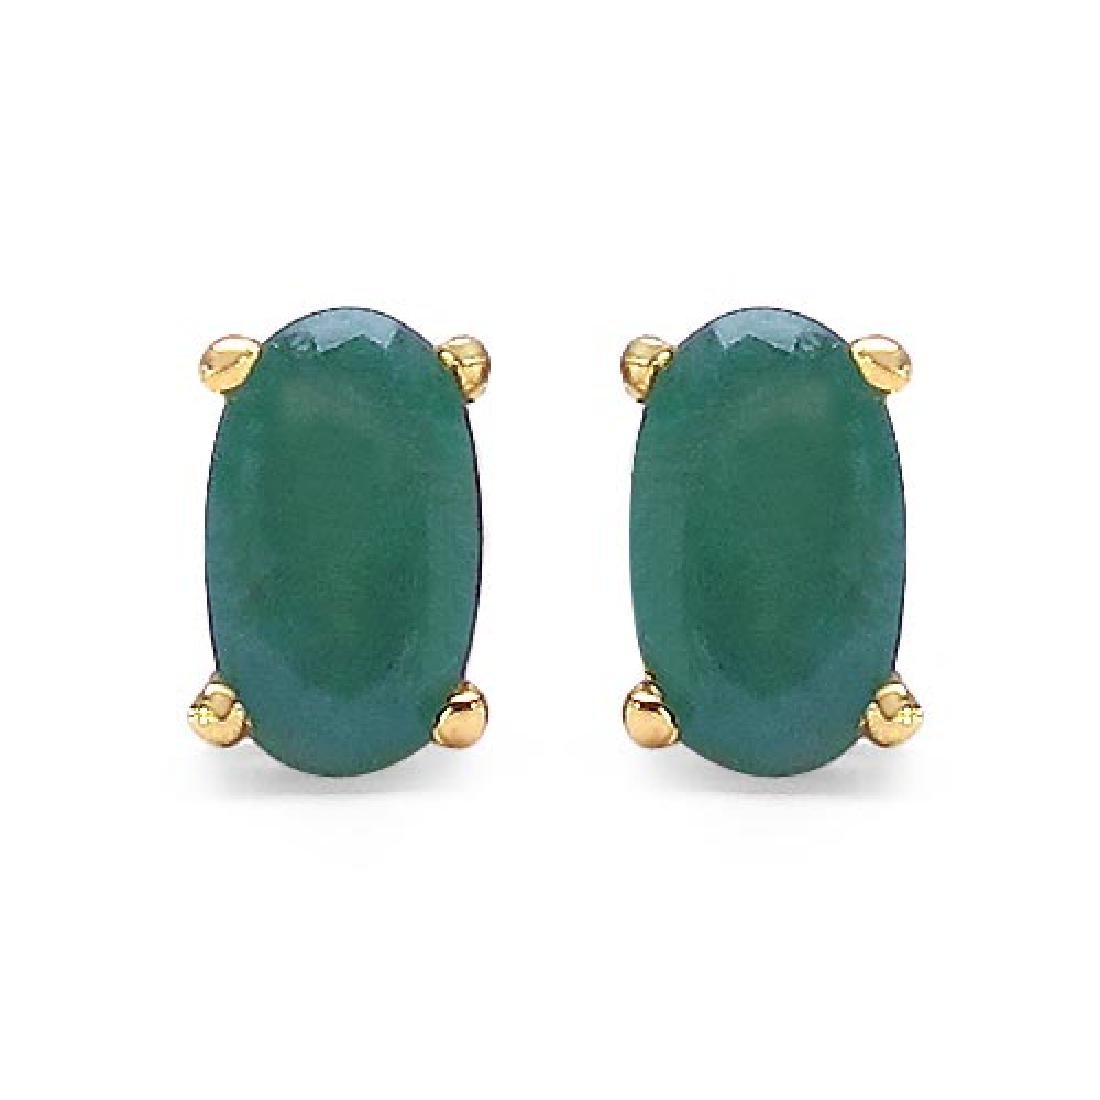 0.54 Carat Genuine Emerald 10K Yellow Gold Earrings